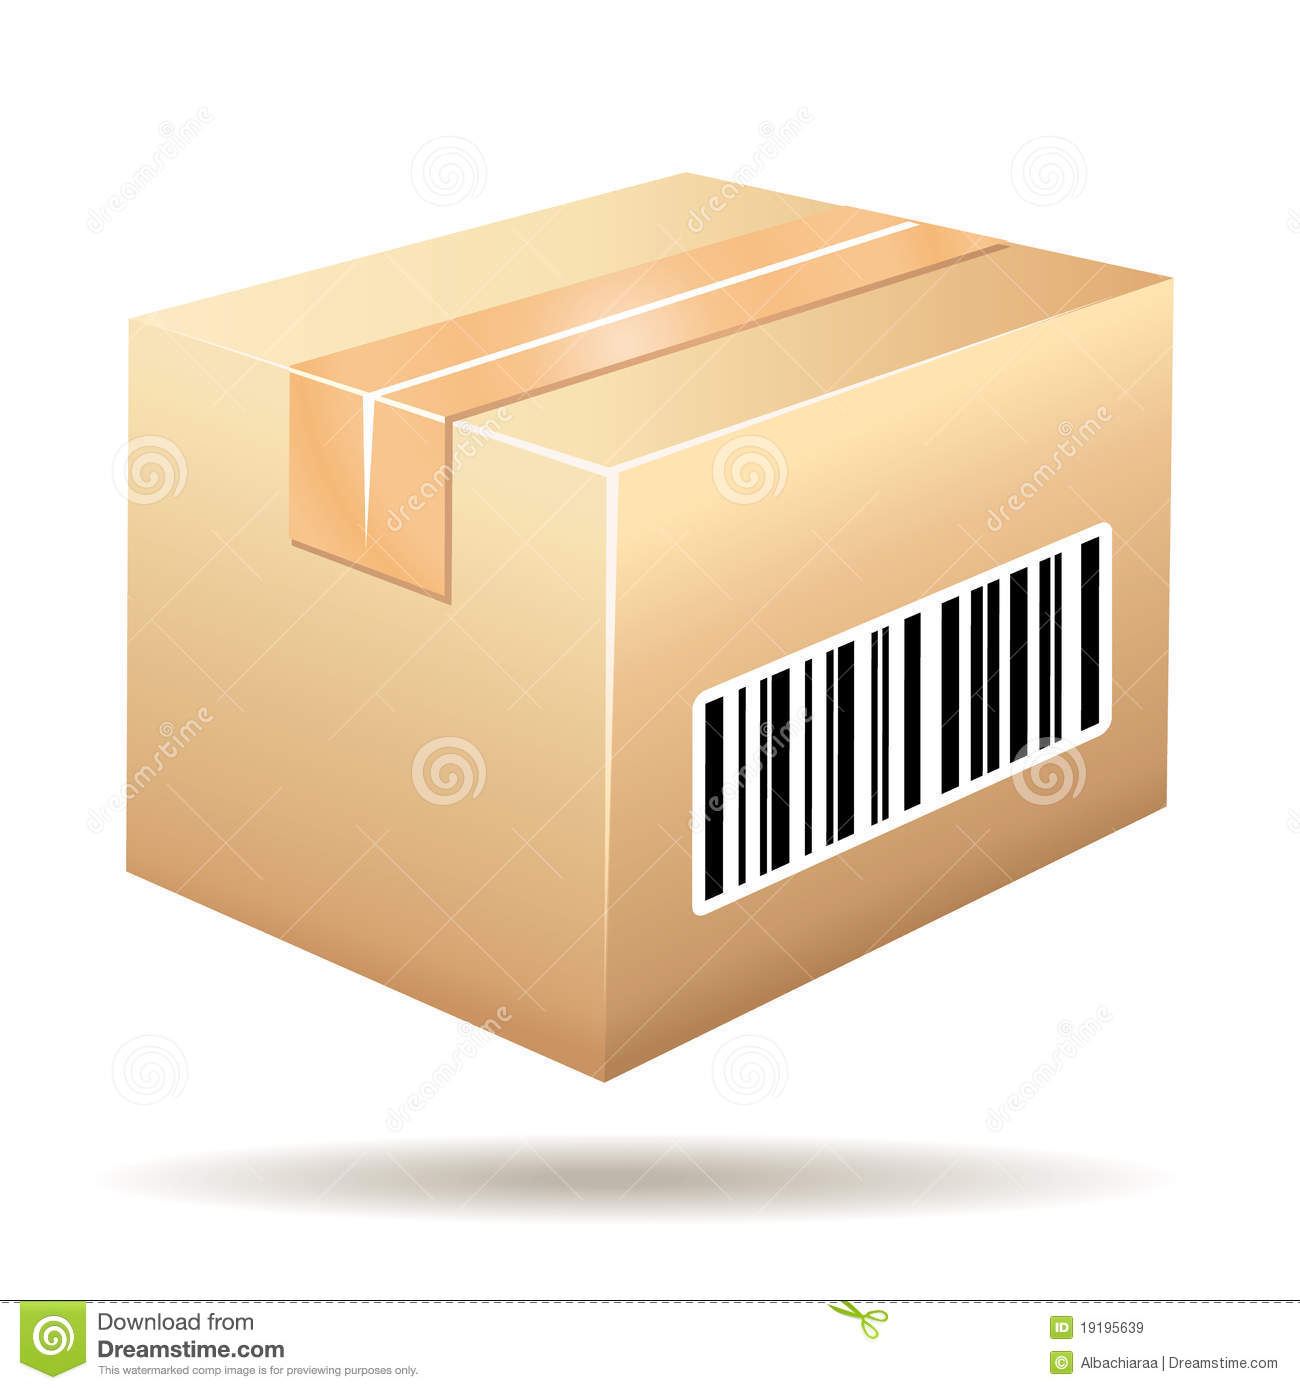 Beautiful Cardboard Icon With Tracking Barc Royalty Free Stock Images ...